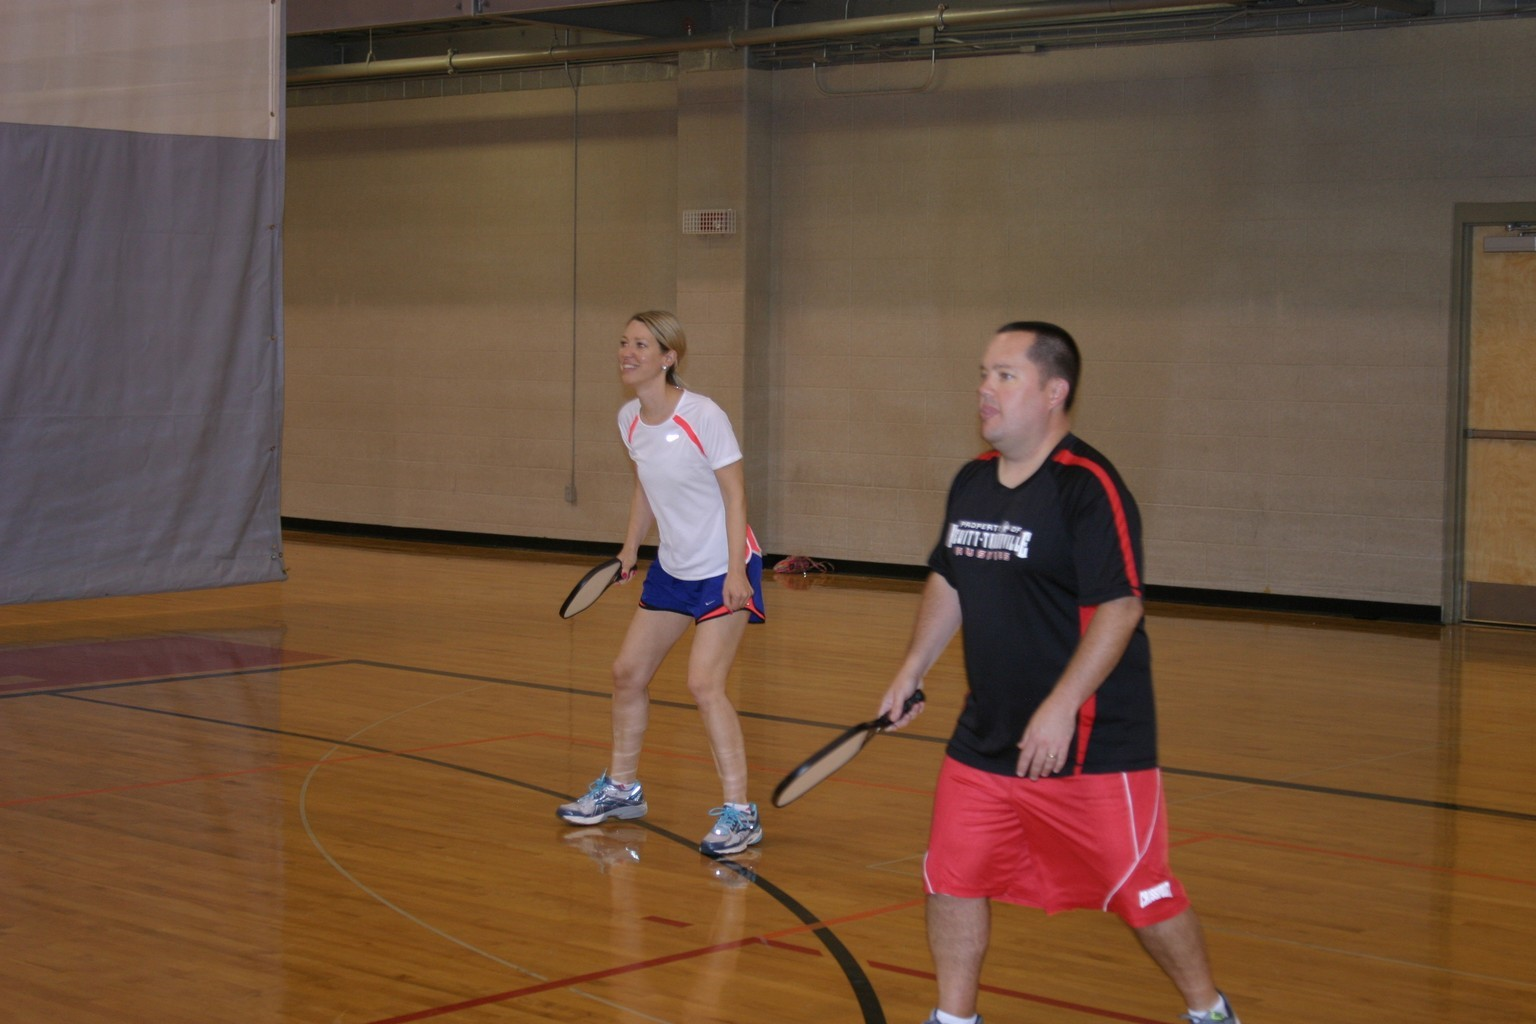 husband wife playing pickleball in trussville alabama, alabama pickleball, trussville pickleball, birmingham pickleball